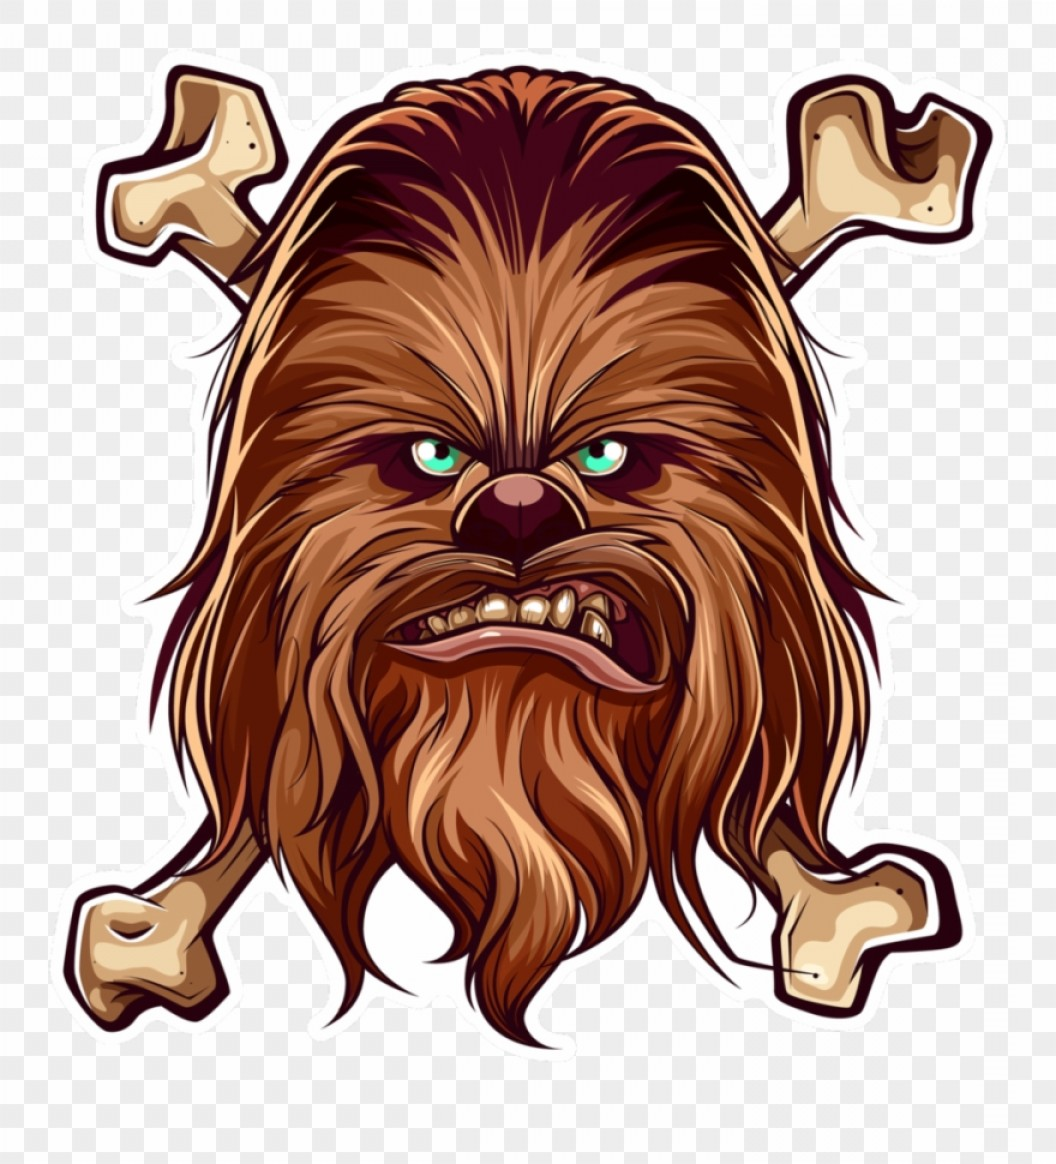 svg freeuse Bmomjrwookie star wars png. Chewbacca clipart vector.